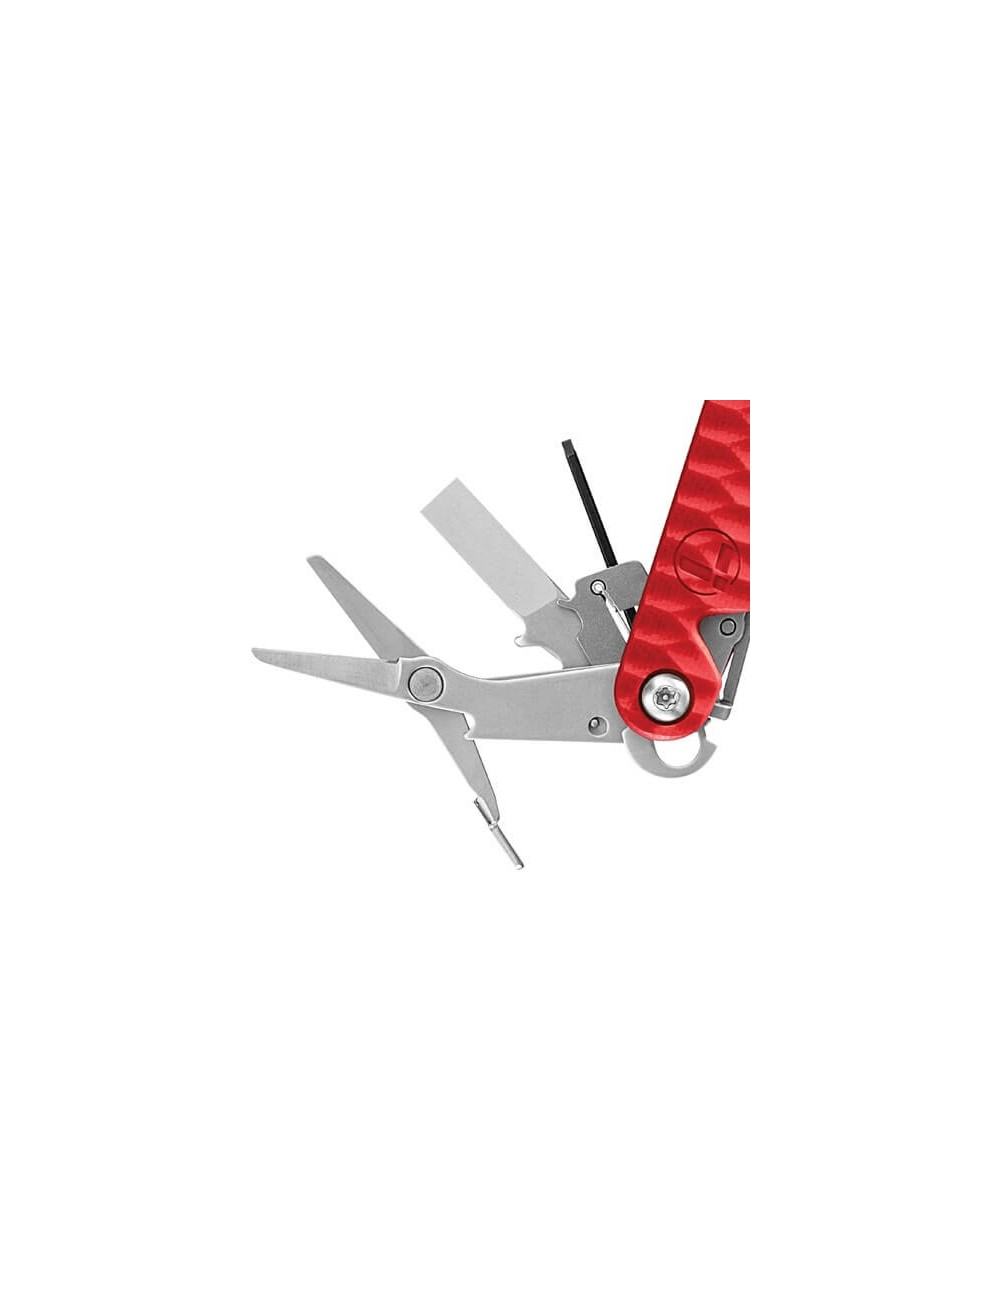 Leatherman multitool Charge® Plus 10-delig met schede - Rood